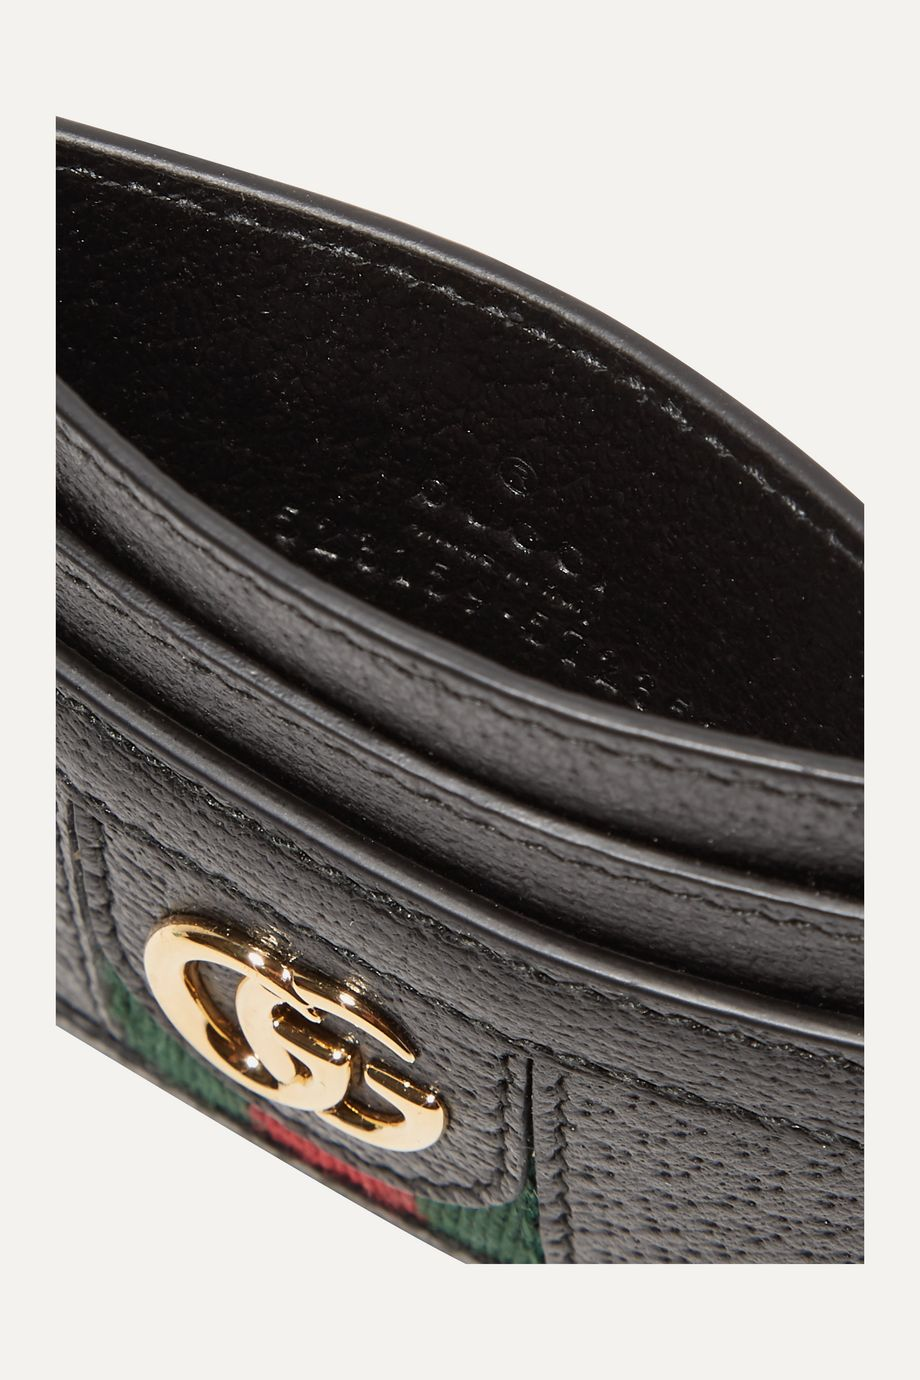 Gucci Ophidia textured-leather cardholder